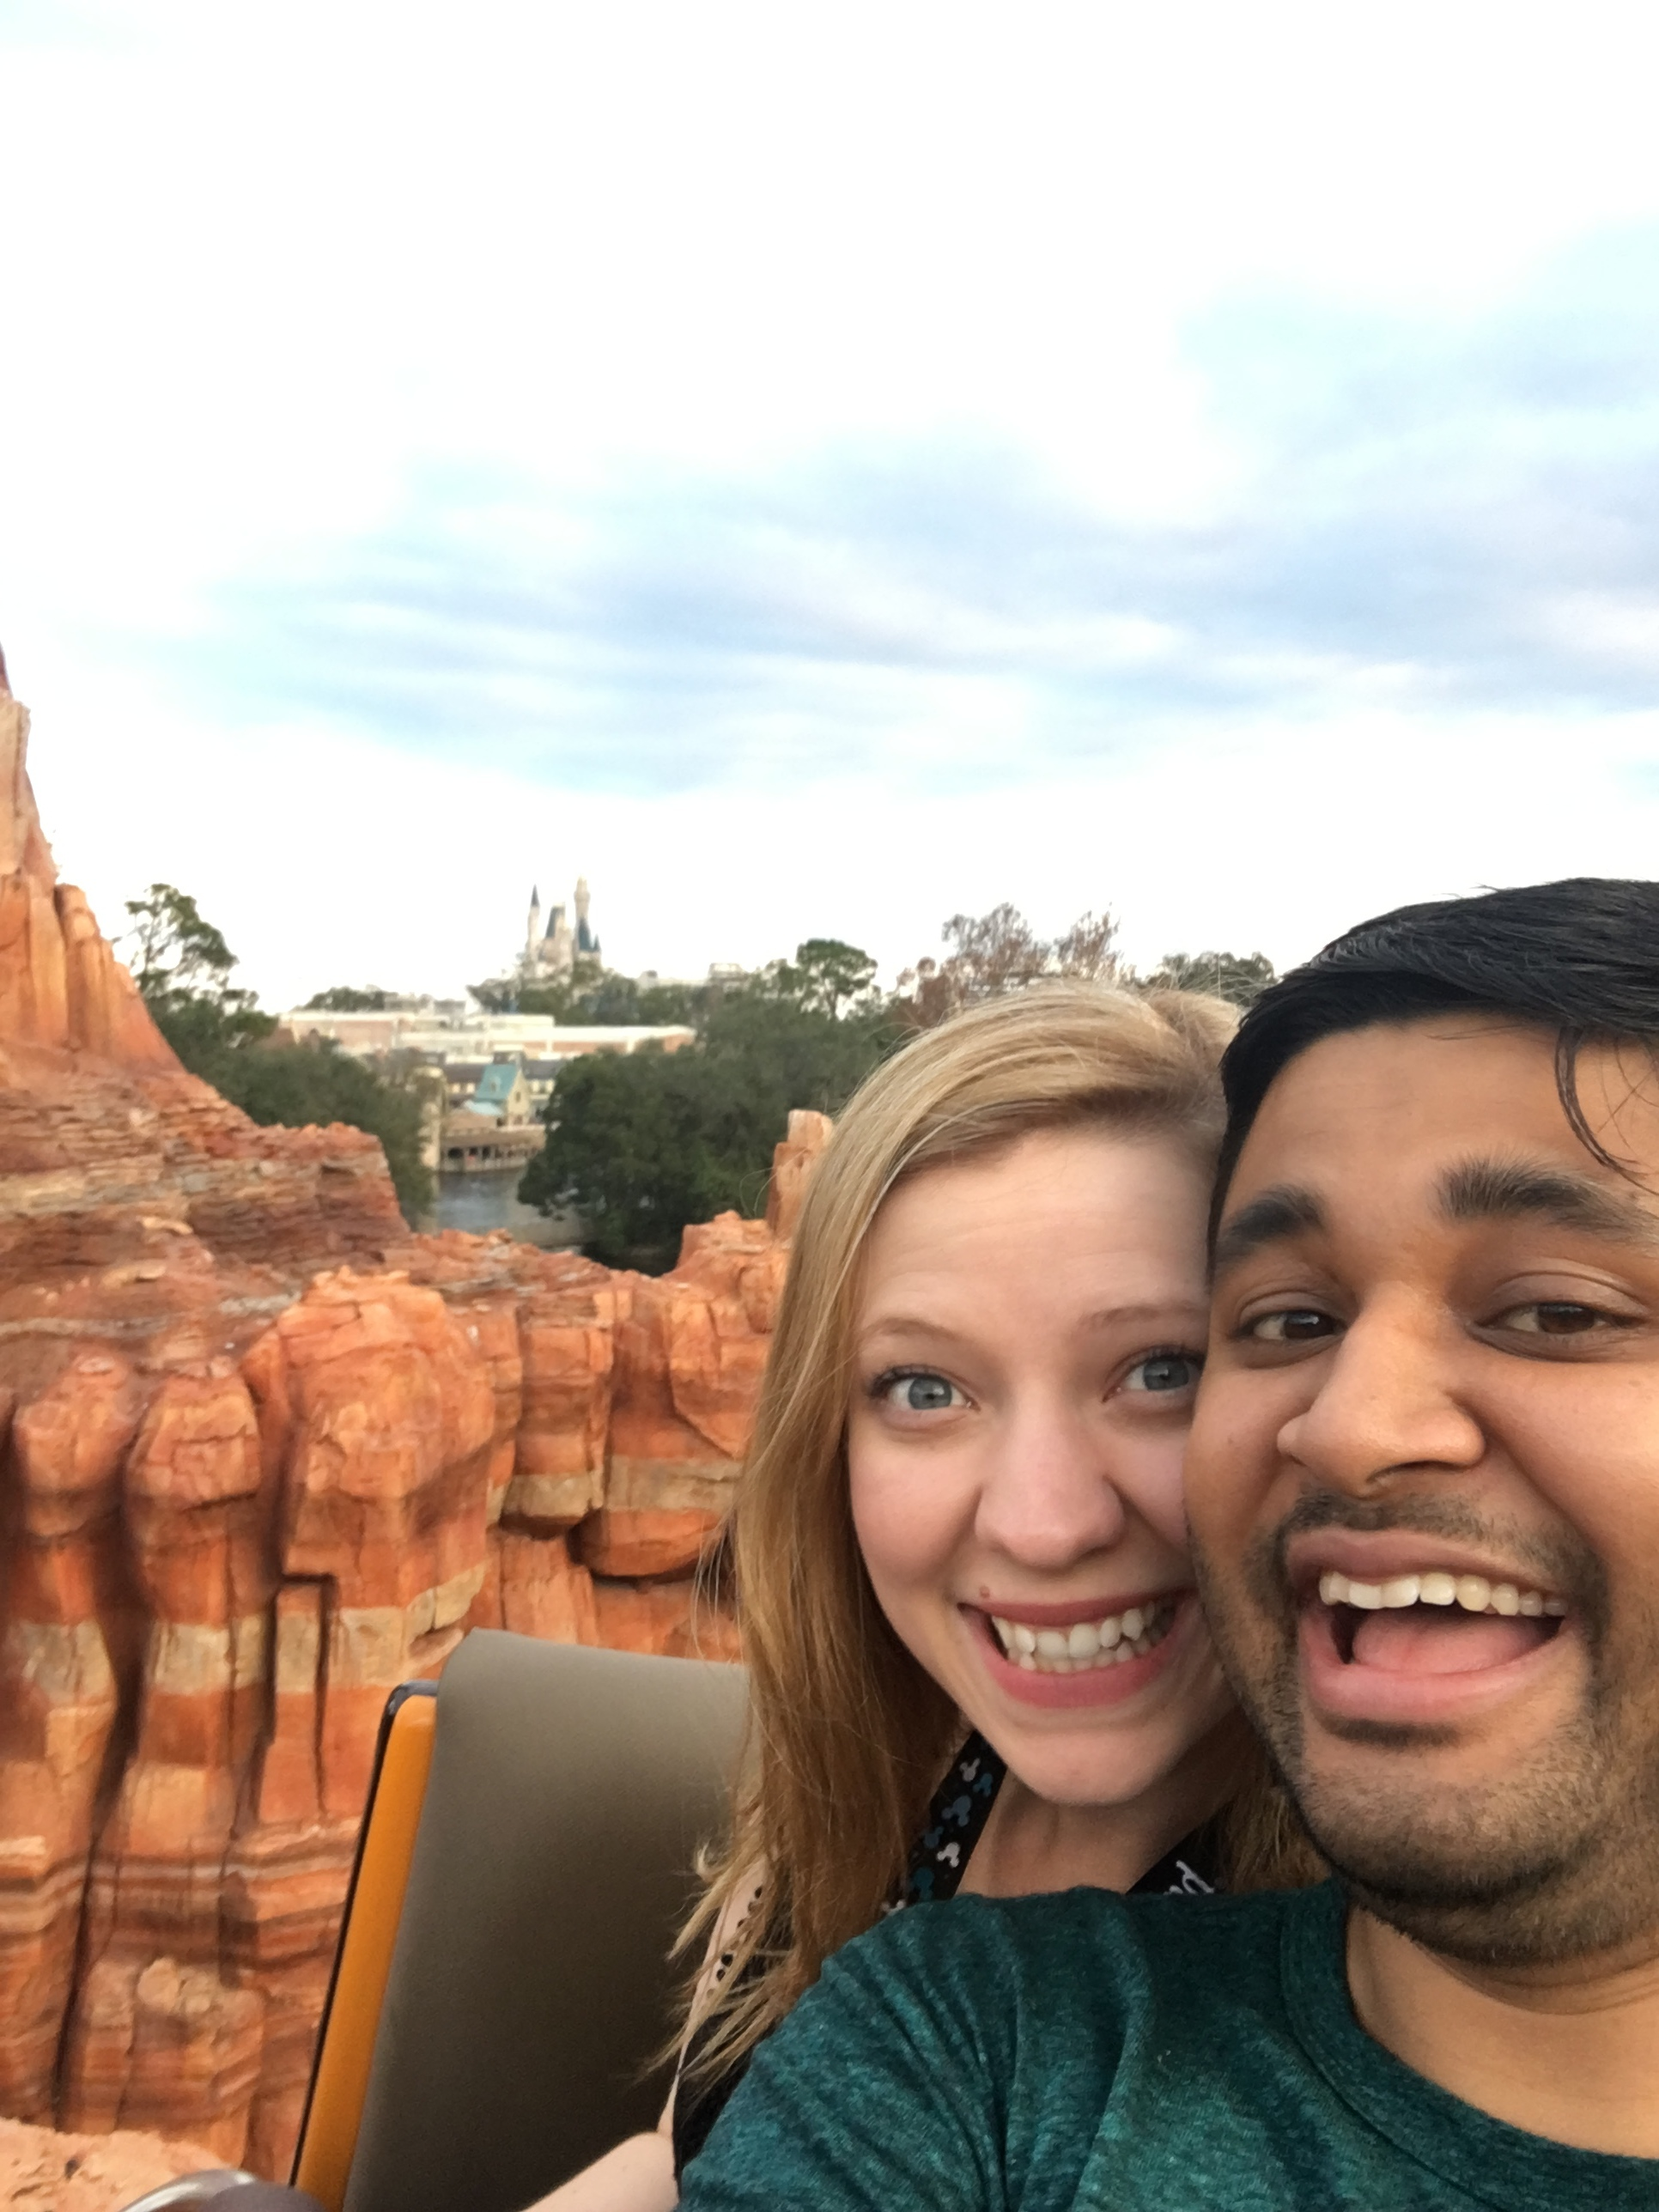 The ride stopped on the top of a hill on Big Thunder. Enjoying the incredible view!